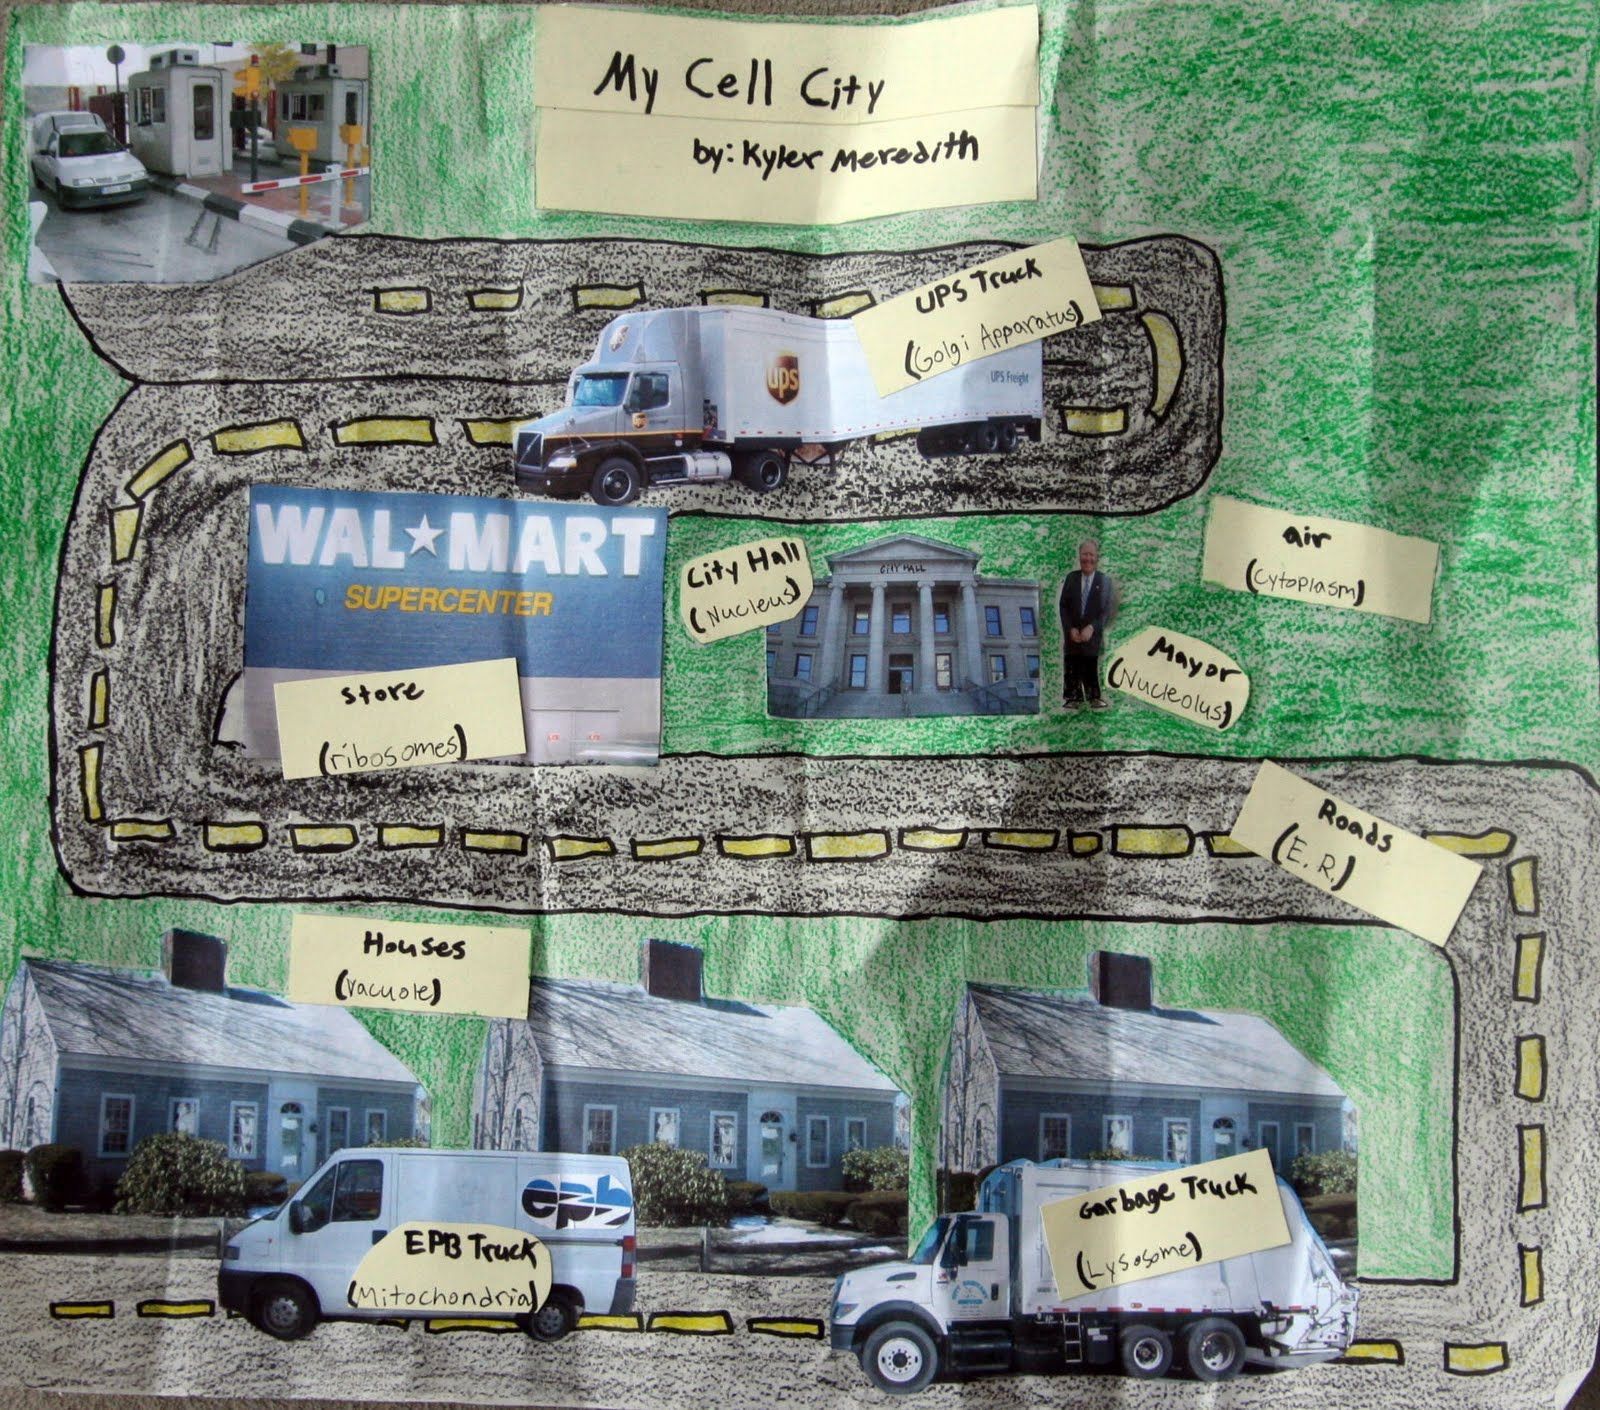 hight resolution of The Merediths: My Cell City by Kyler Meredith   Cell city